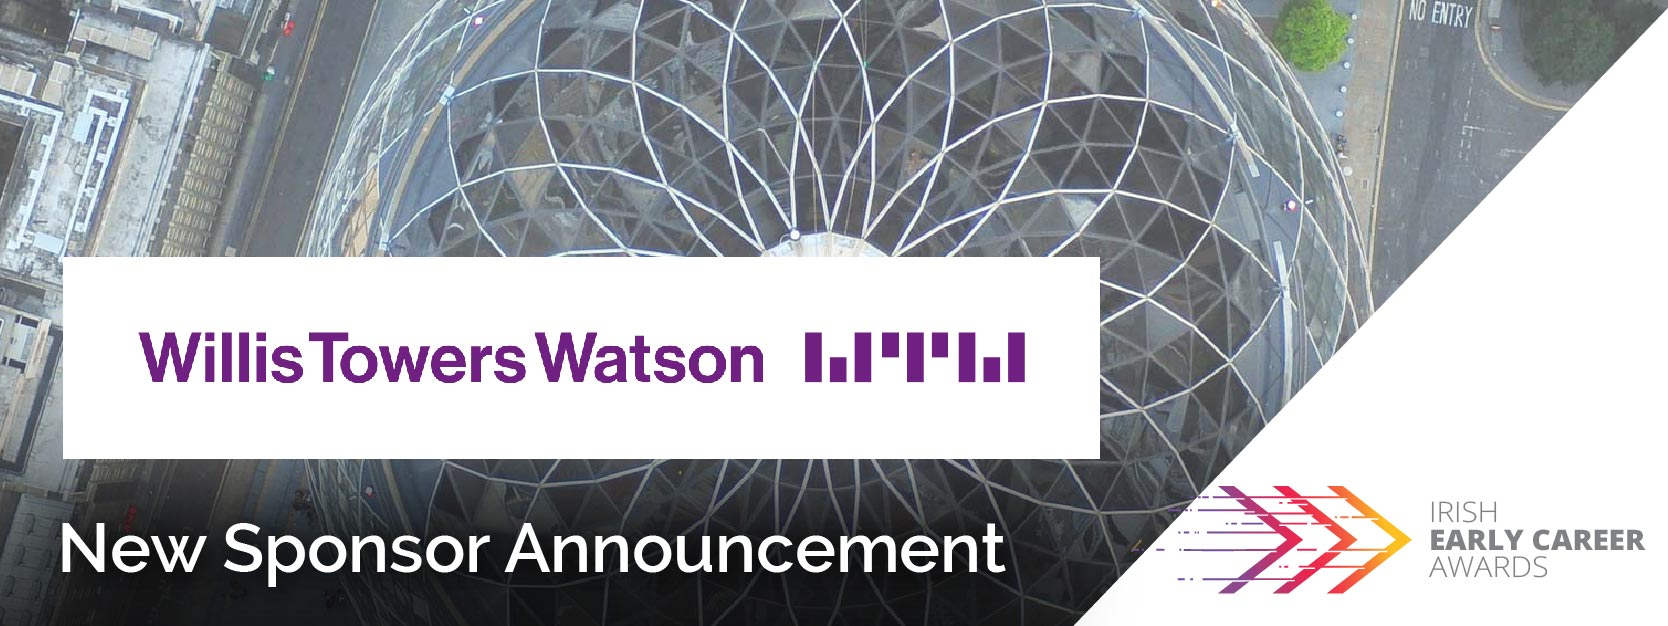 Willis Towers Watson sponsor Irish Early Career Awards